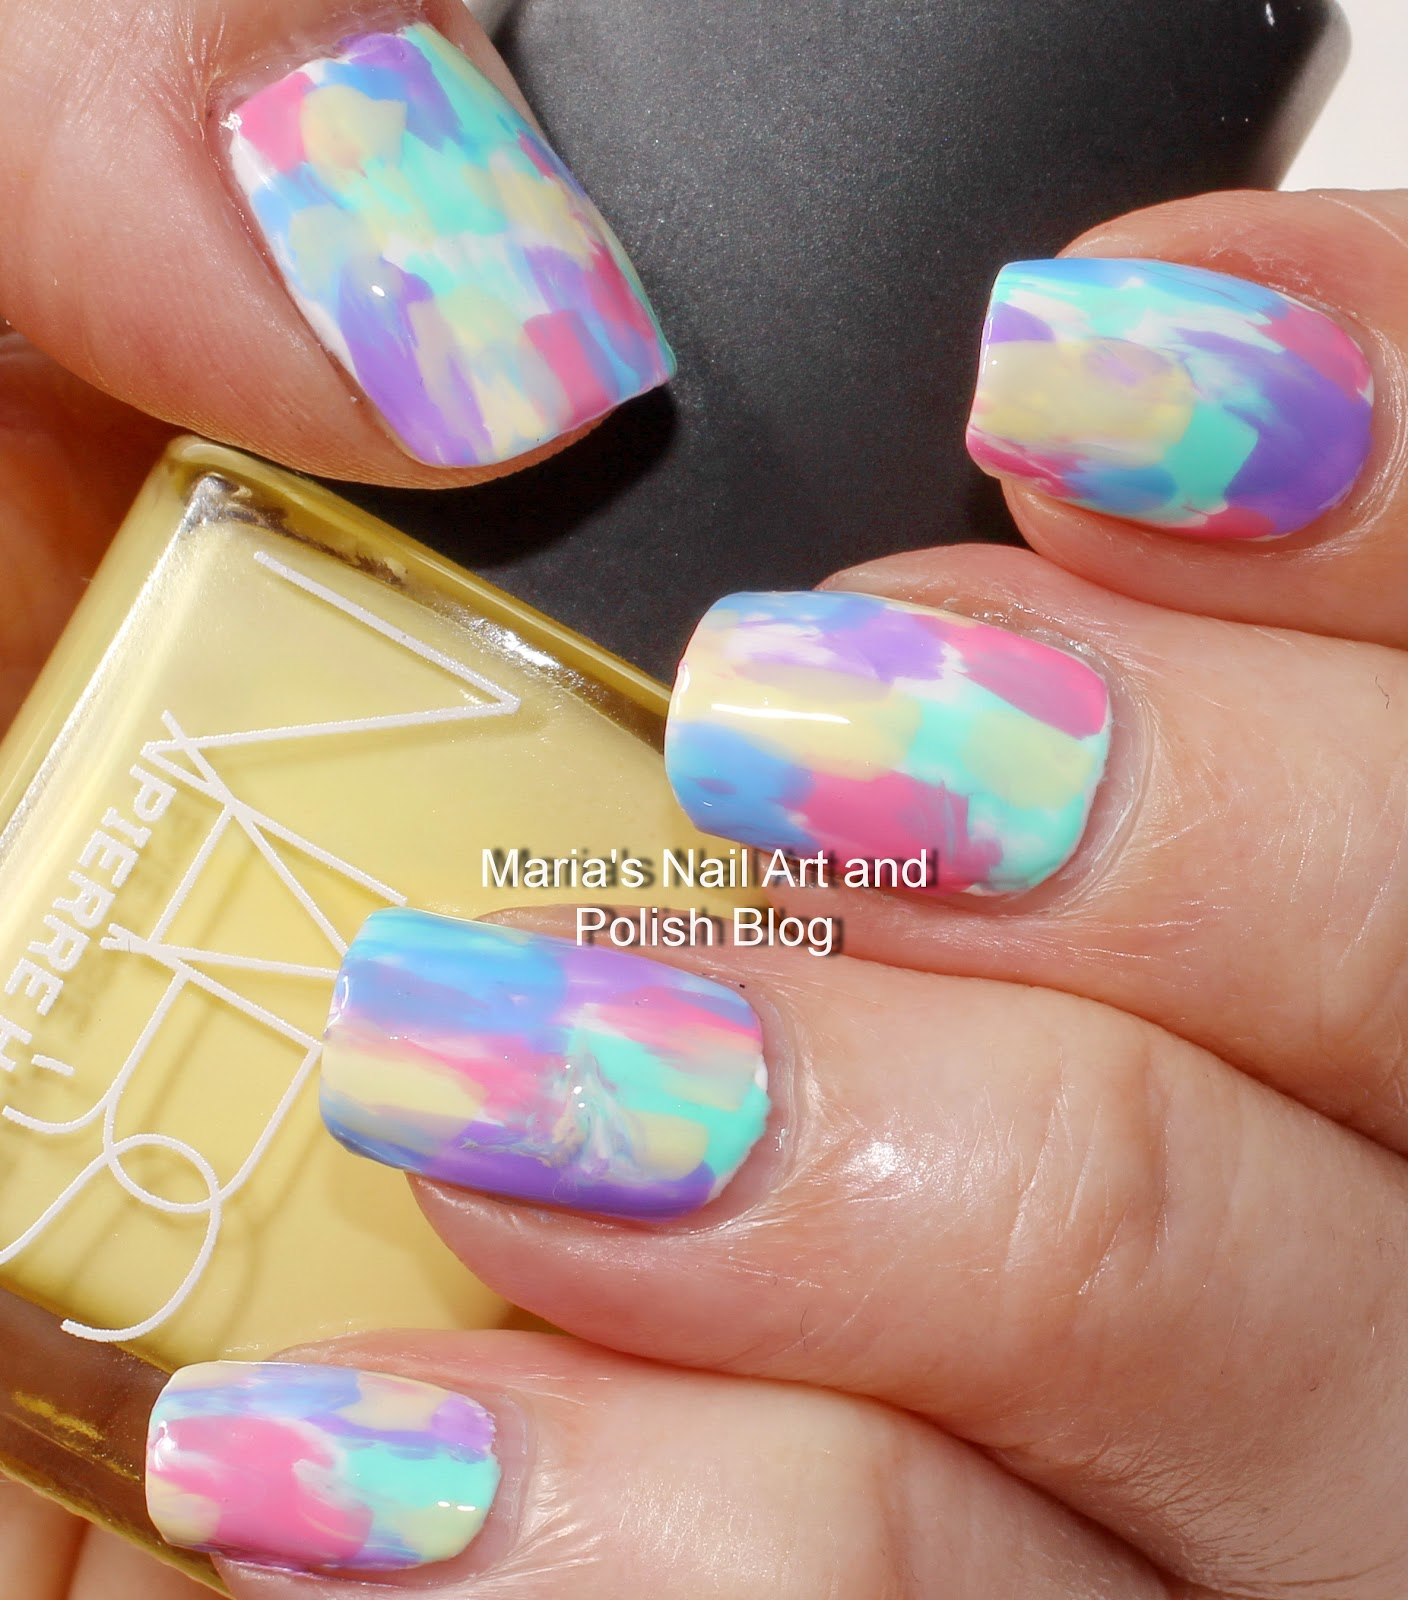 Marias nail art and polish blog pastel brush stroke nail art with a small nail art brush dipped in acetone i blurred the edges partially for a marbled effect before it dried completely the top coat is seche vite prinsesfo Images